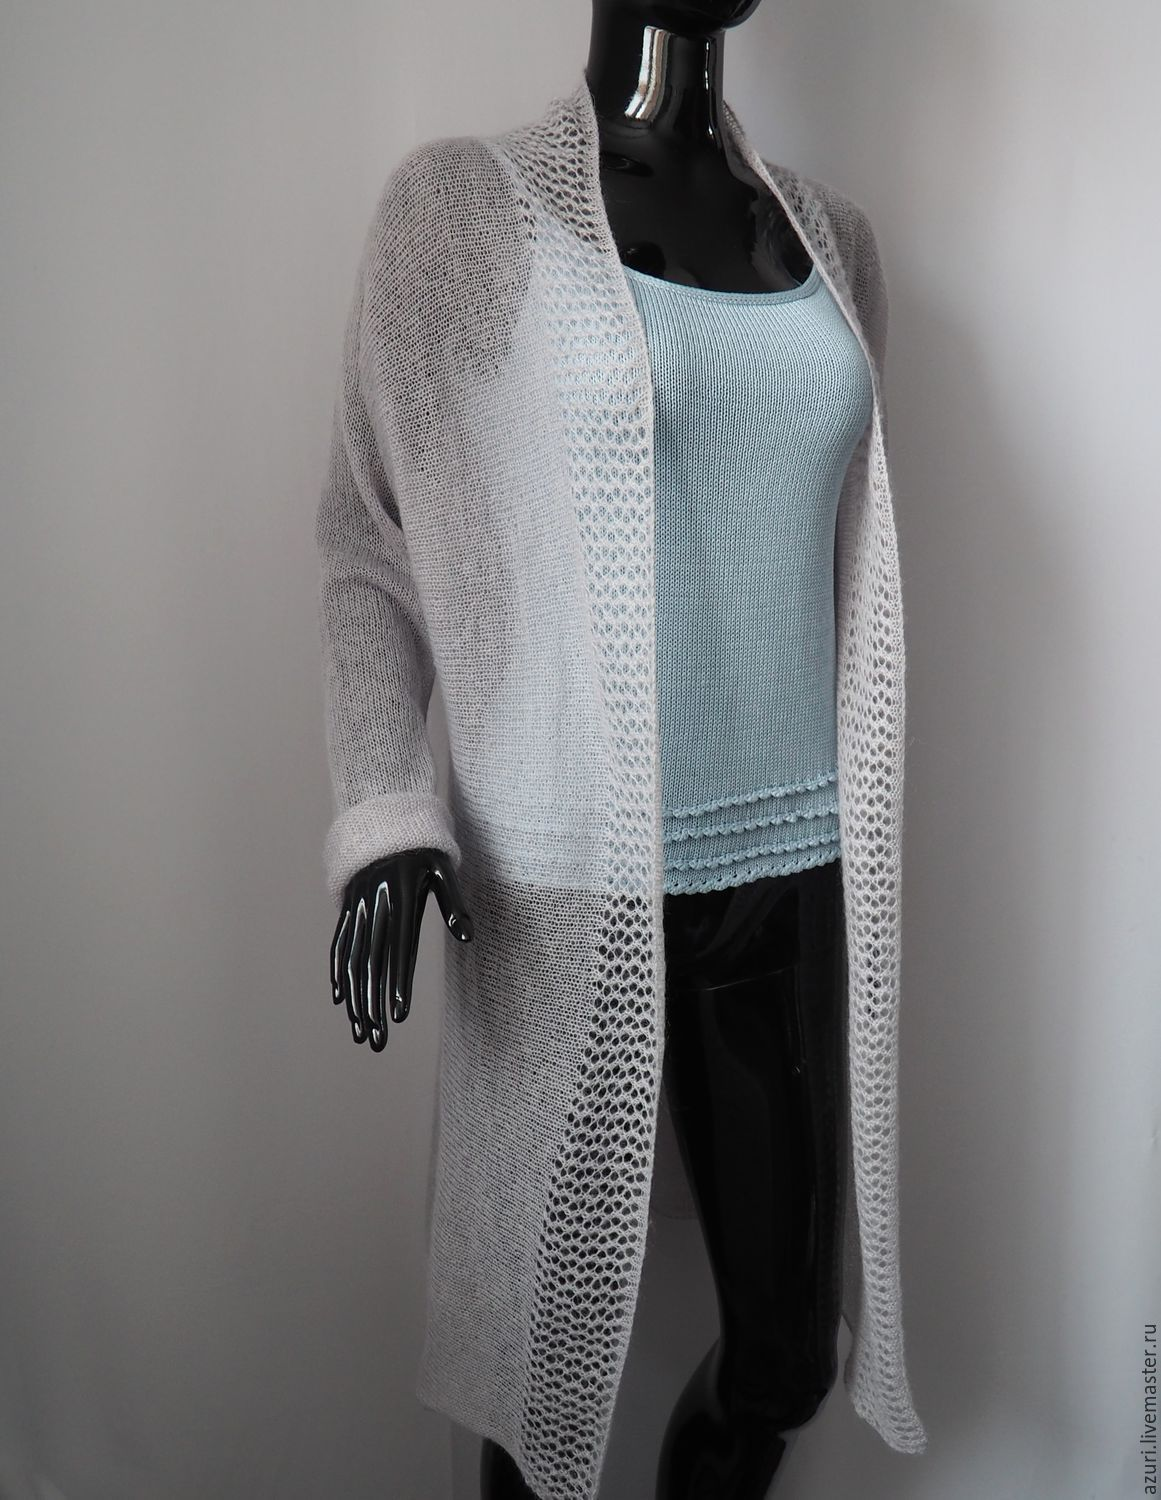 Cardigan knitted from kid-mohair, Cardigans, Cheboksary,  Фото №1